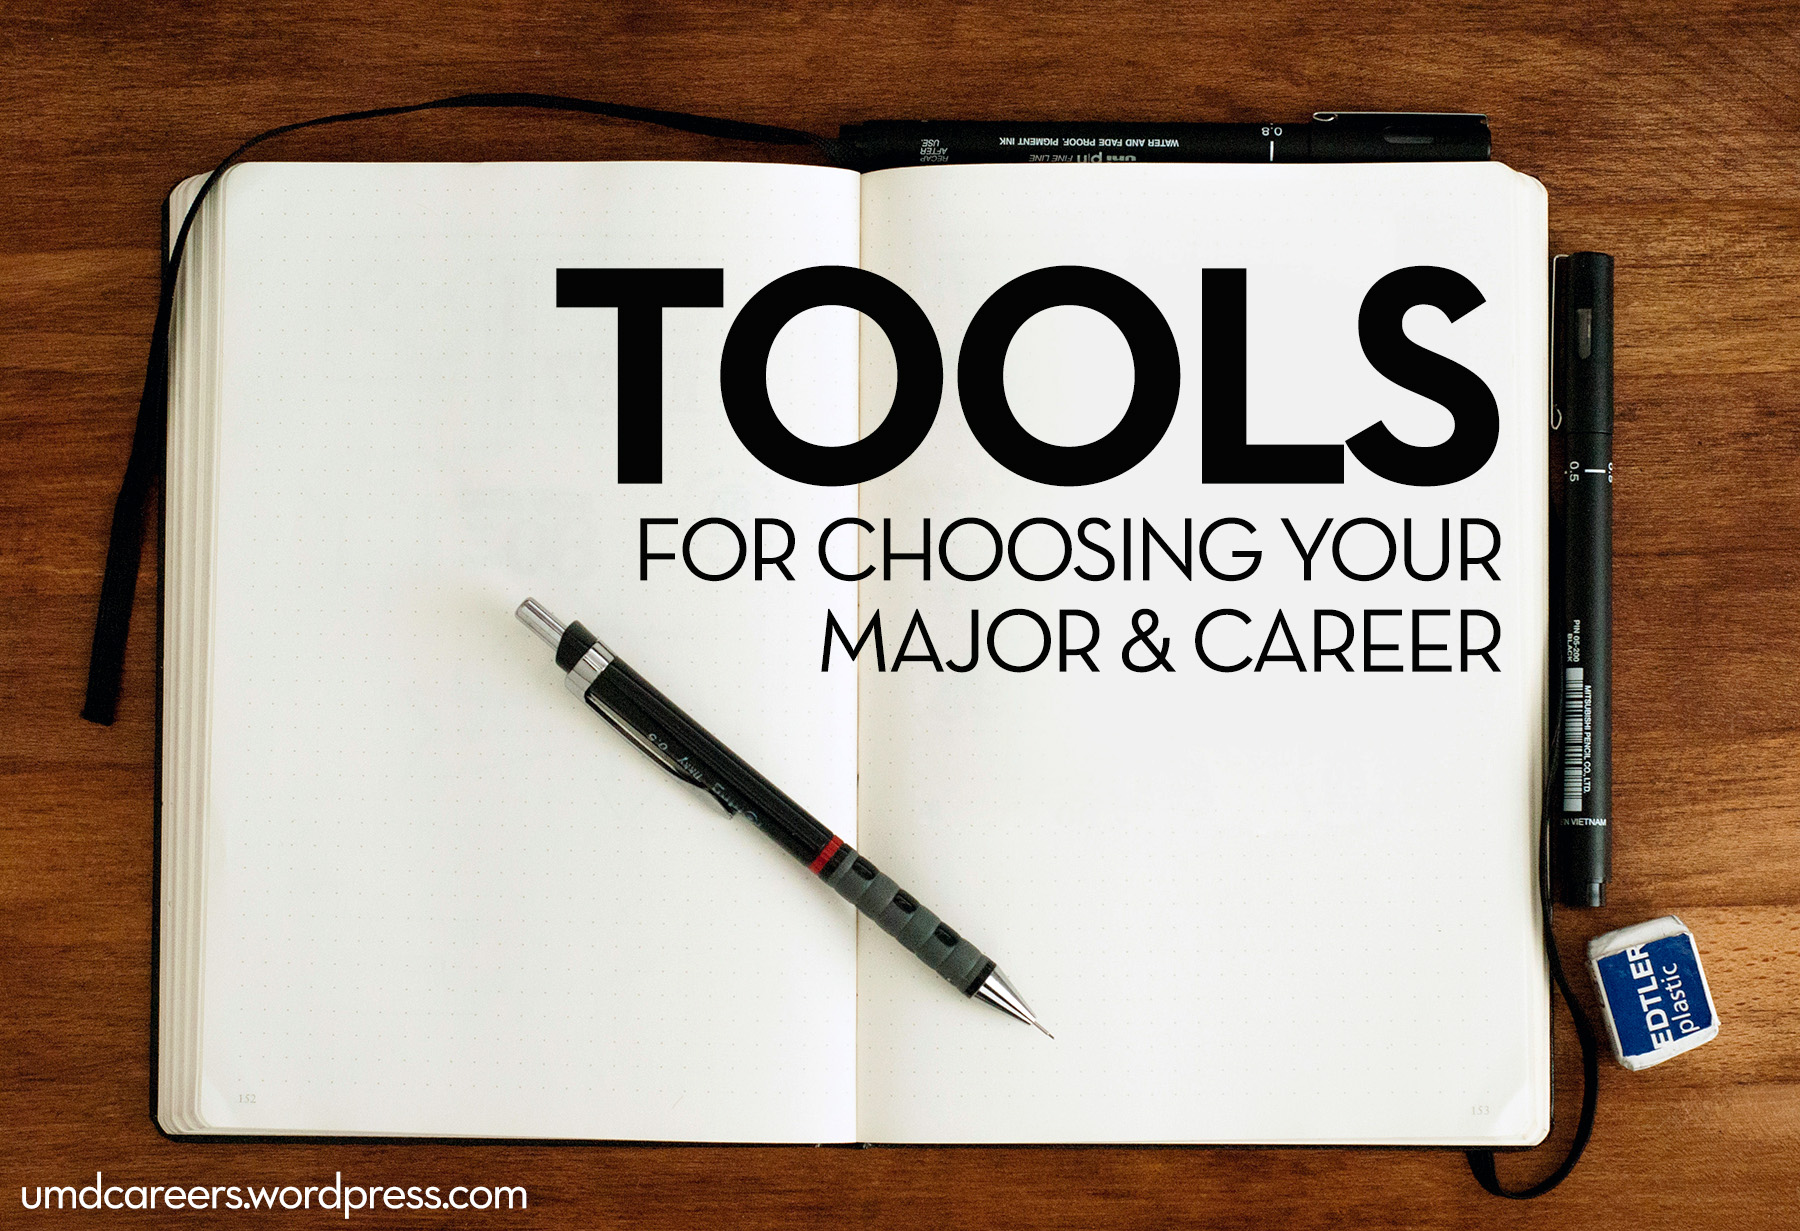 Image: open notebook on wood desktop with pens Text: Tools for choosing your major and career